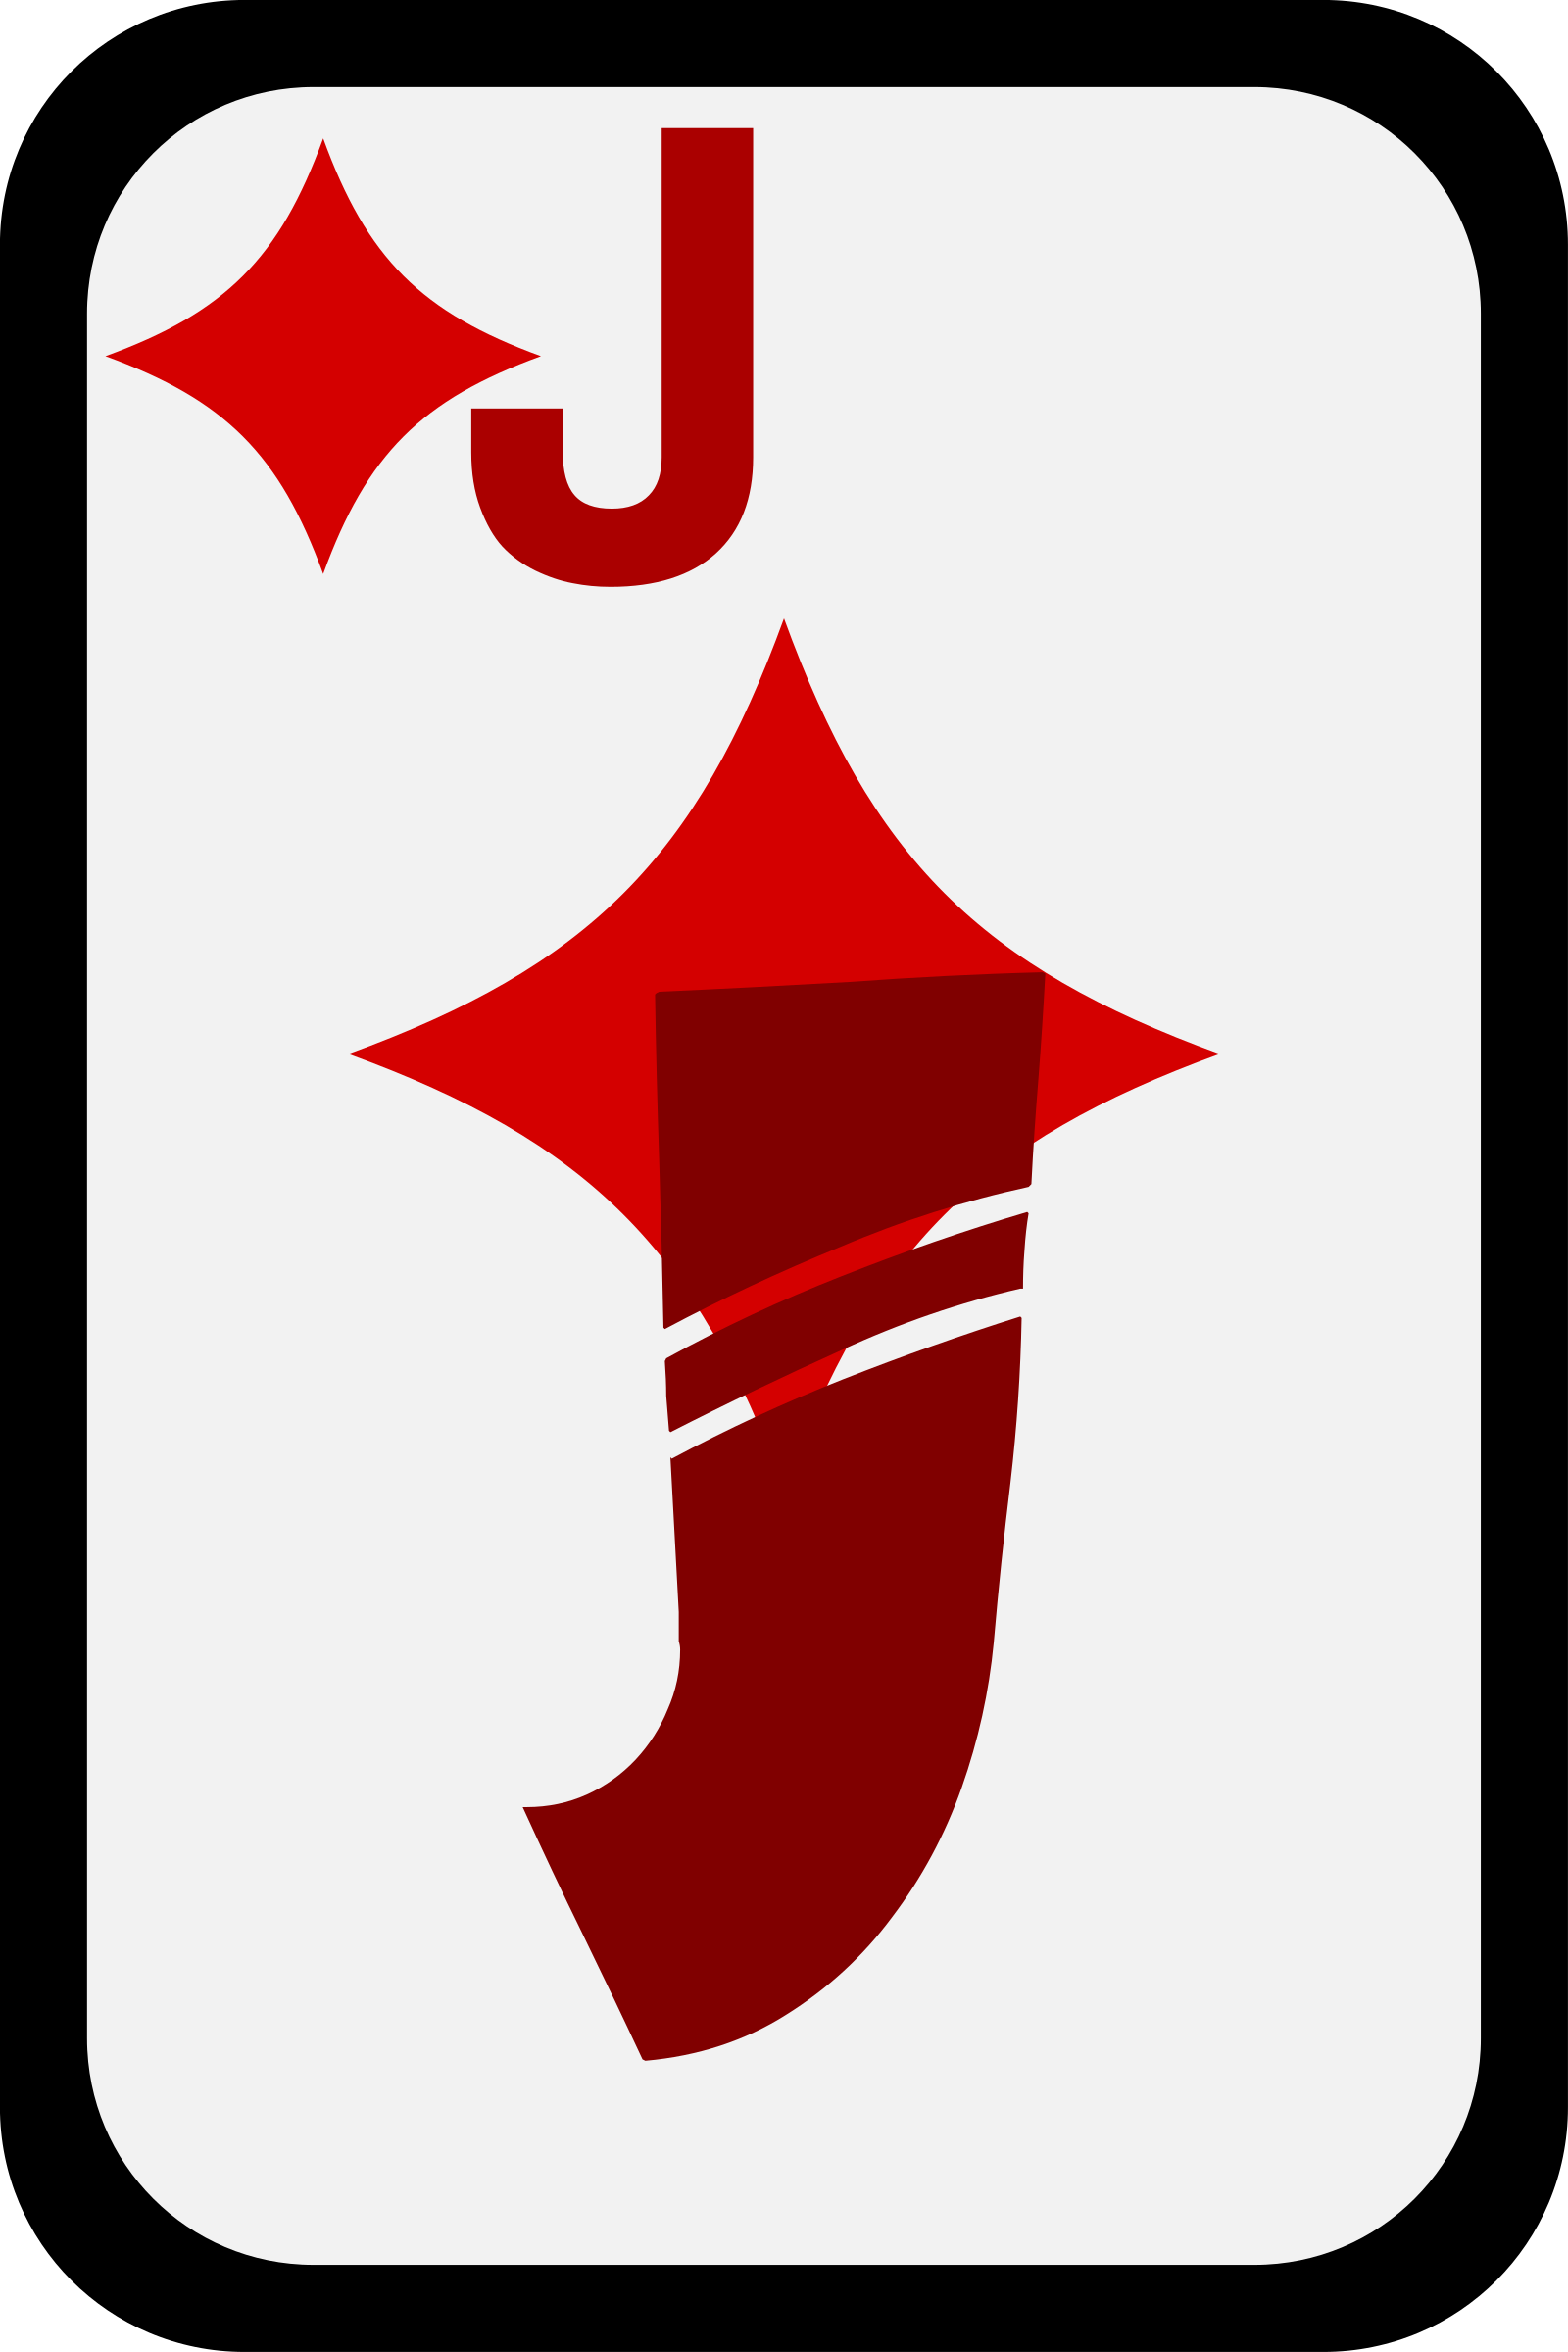 Jack of Diamonds by momoko